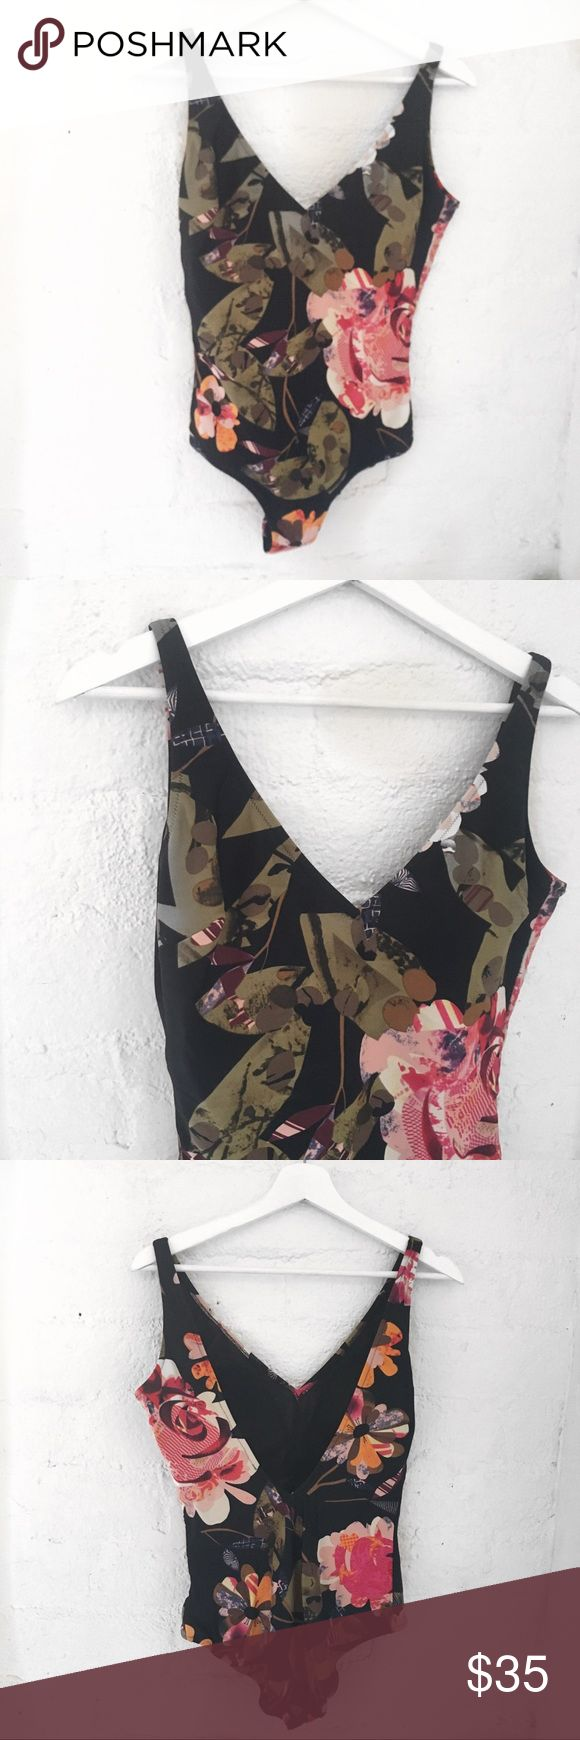 Gottex Silver One-Piece V-neck  Built in padding  Low v-back  Color: Black and red floral  82% Polyamide 18% Spandex   Size: 14   Condition: Like New, no damage   ▪️No Pets ▪️Non-smoking home  ▪️Ships from Los Angeles Gottex Silver Swim One Pieces